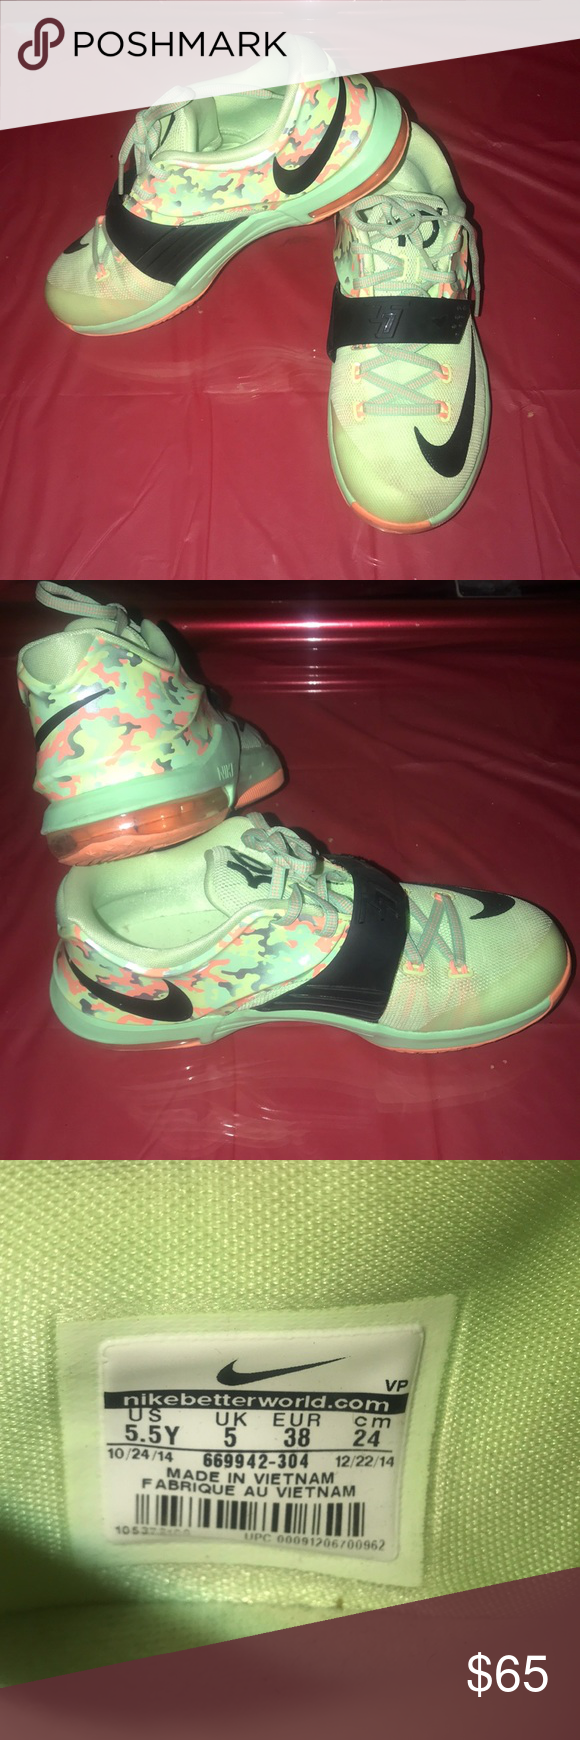 6e4b297ecf11 Kevin Durant shoes Colors are neon Green